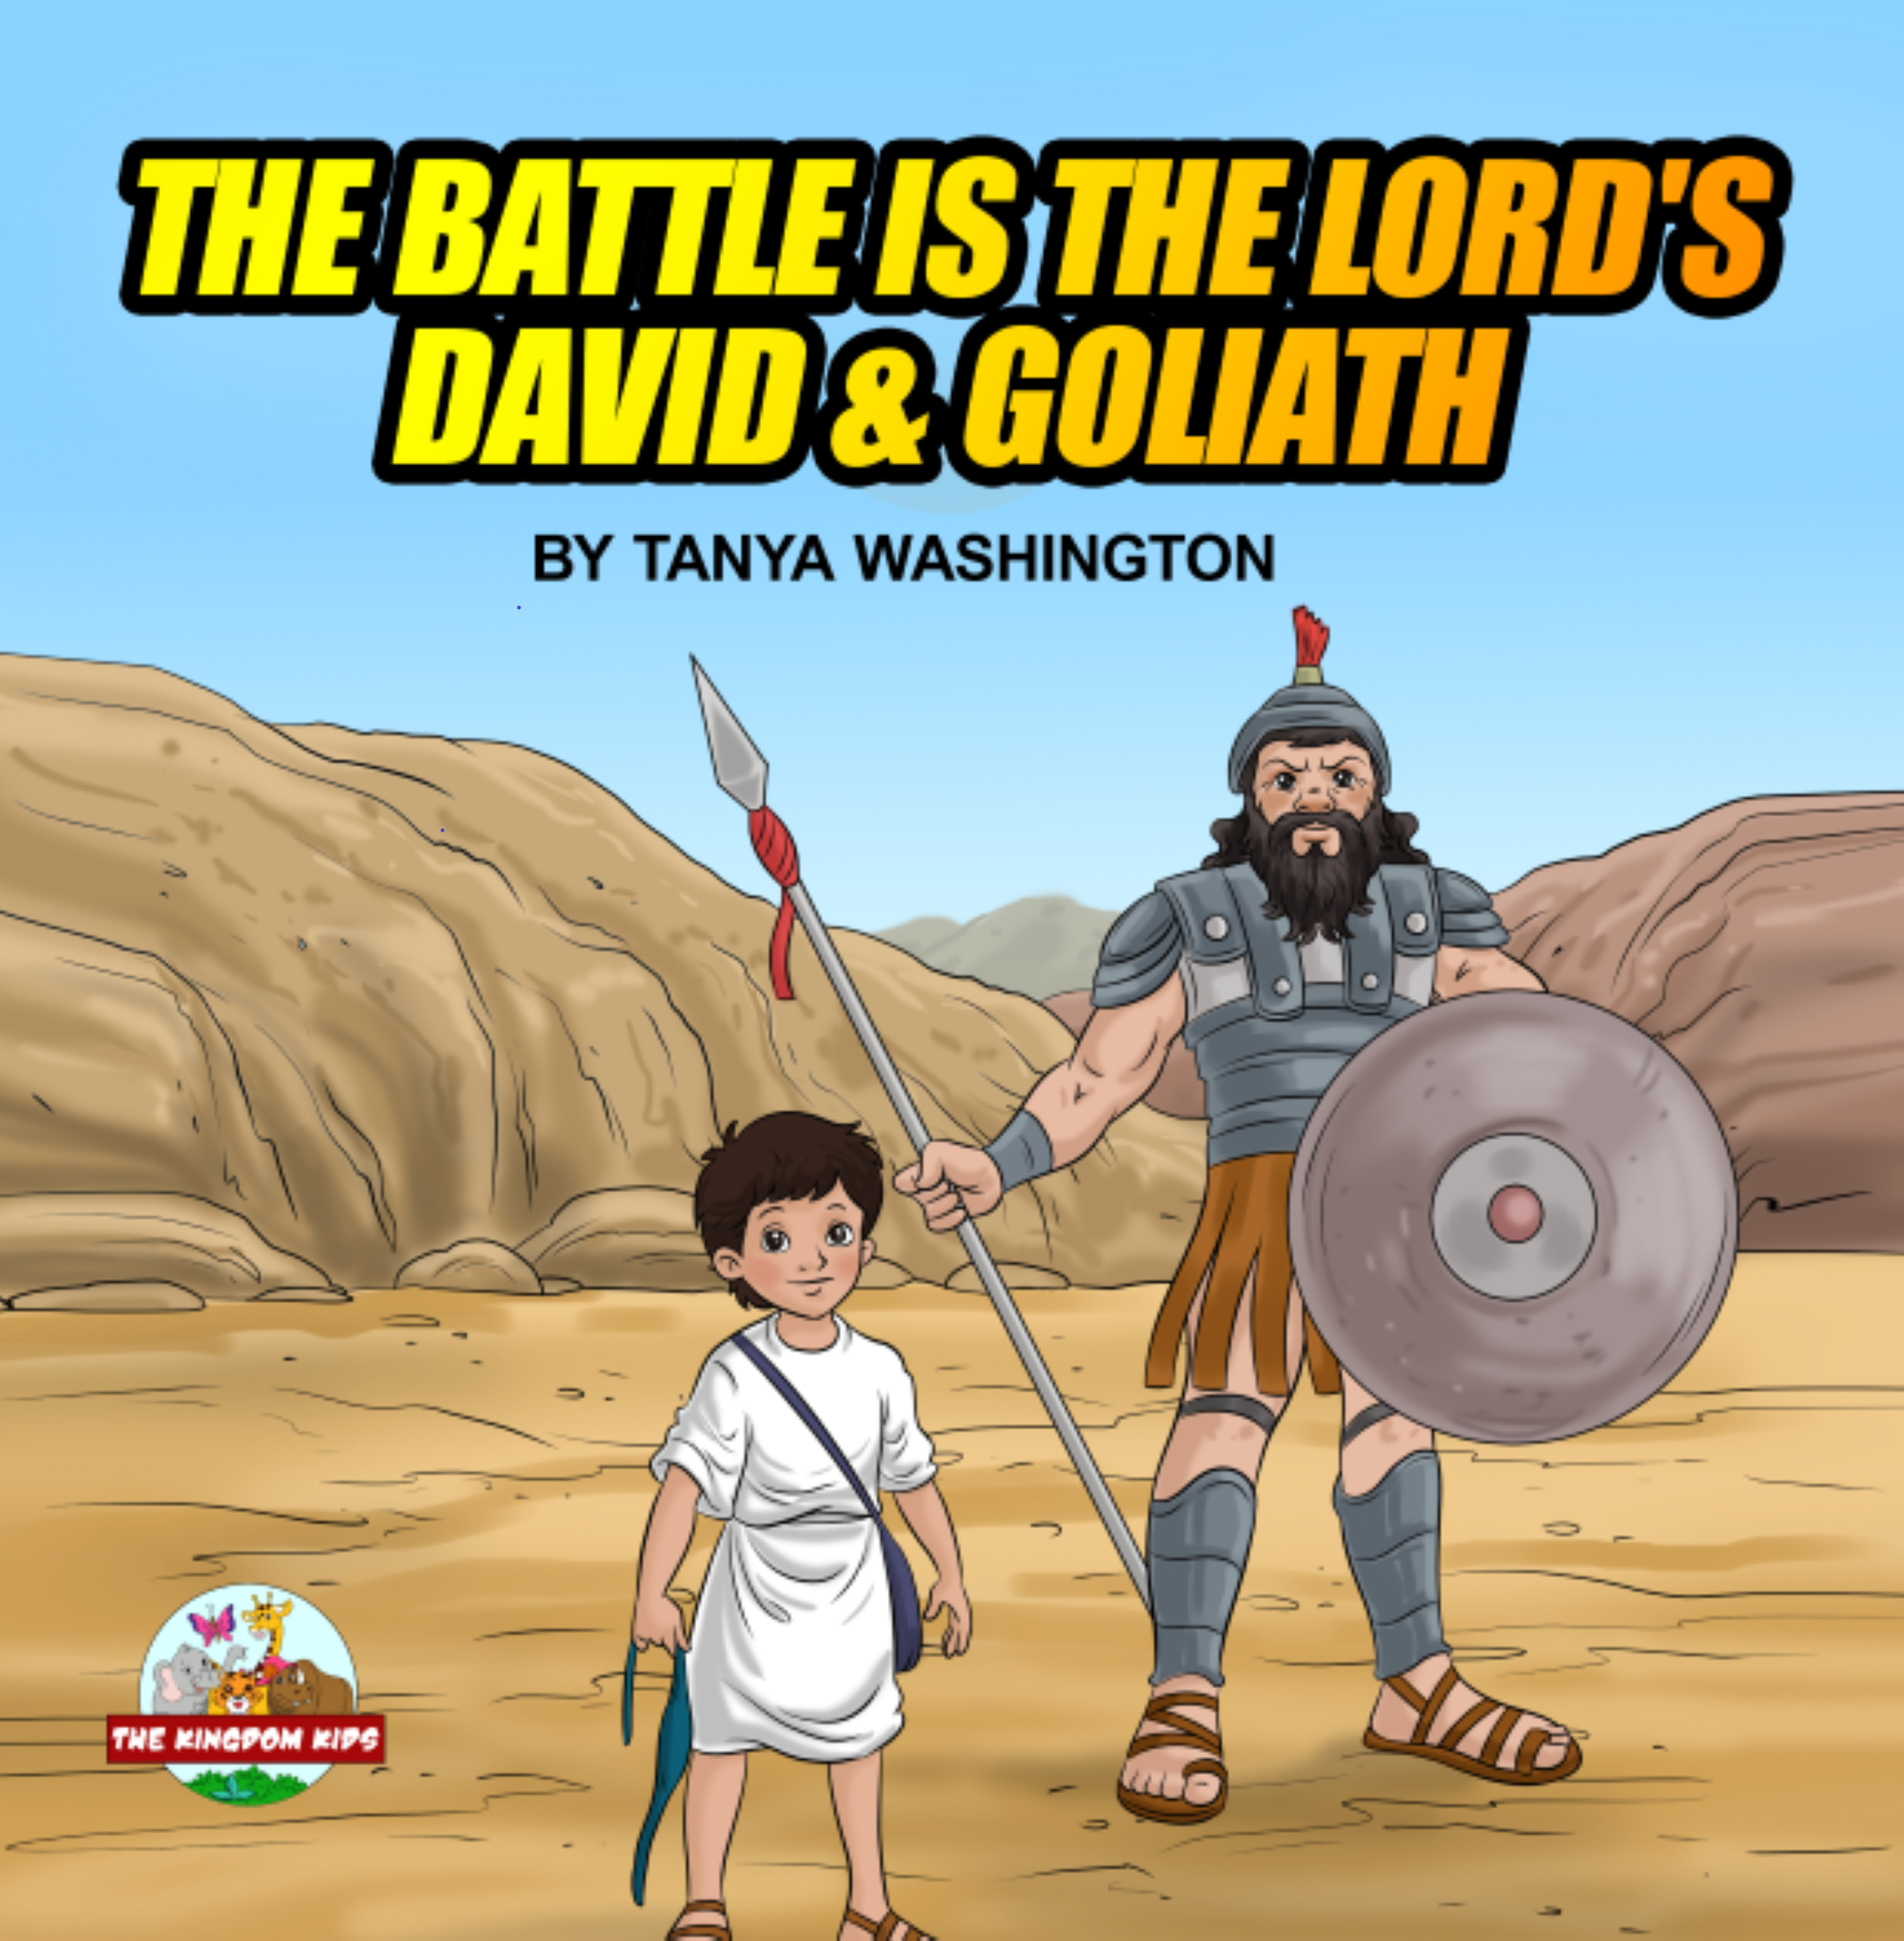 The Battle is the Lord's David & Goliath.png